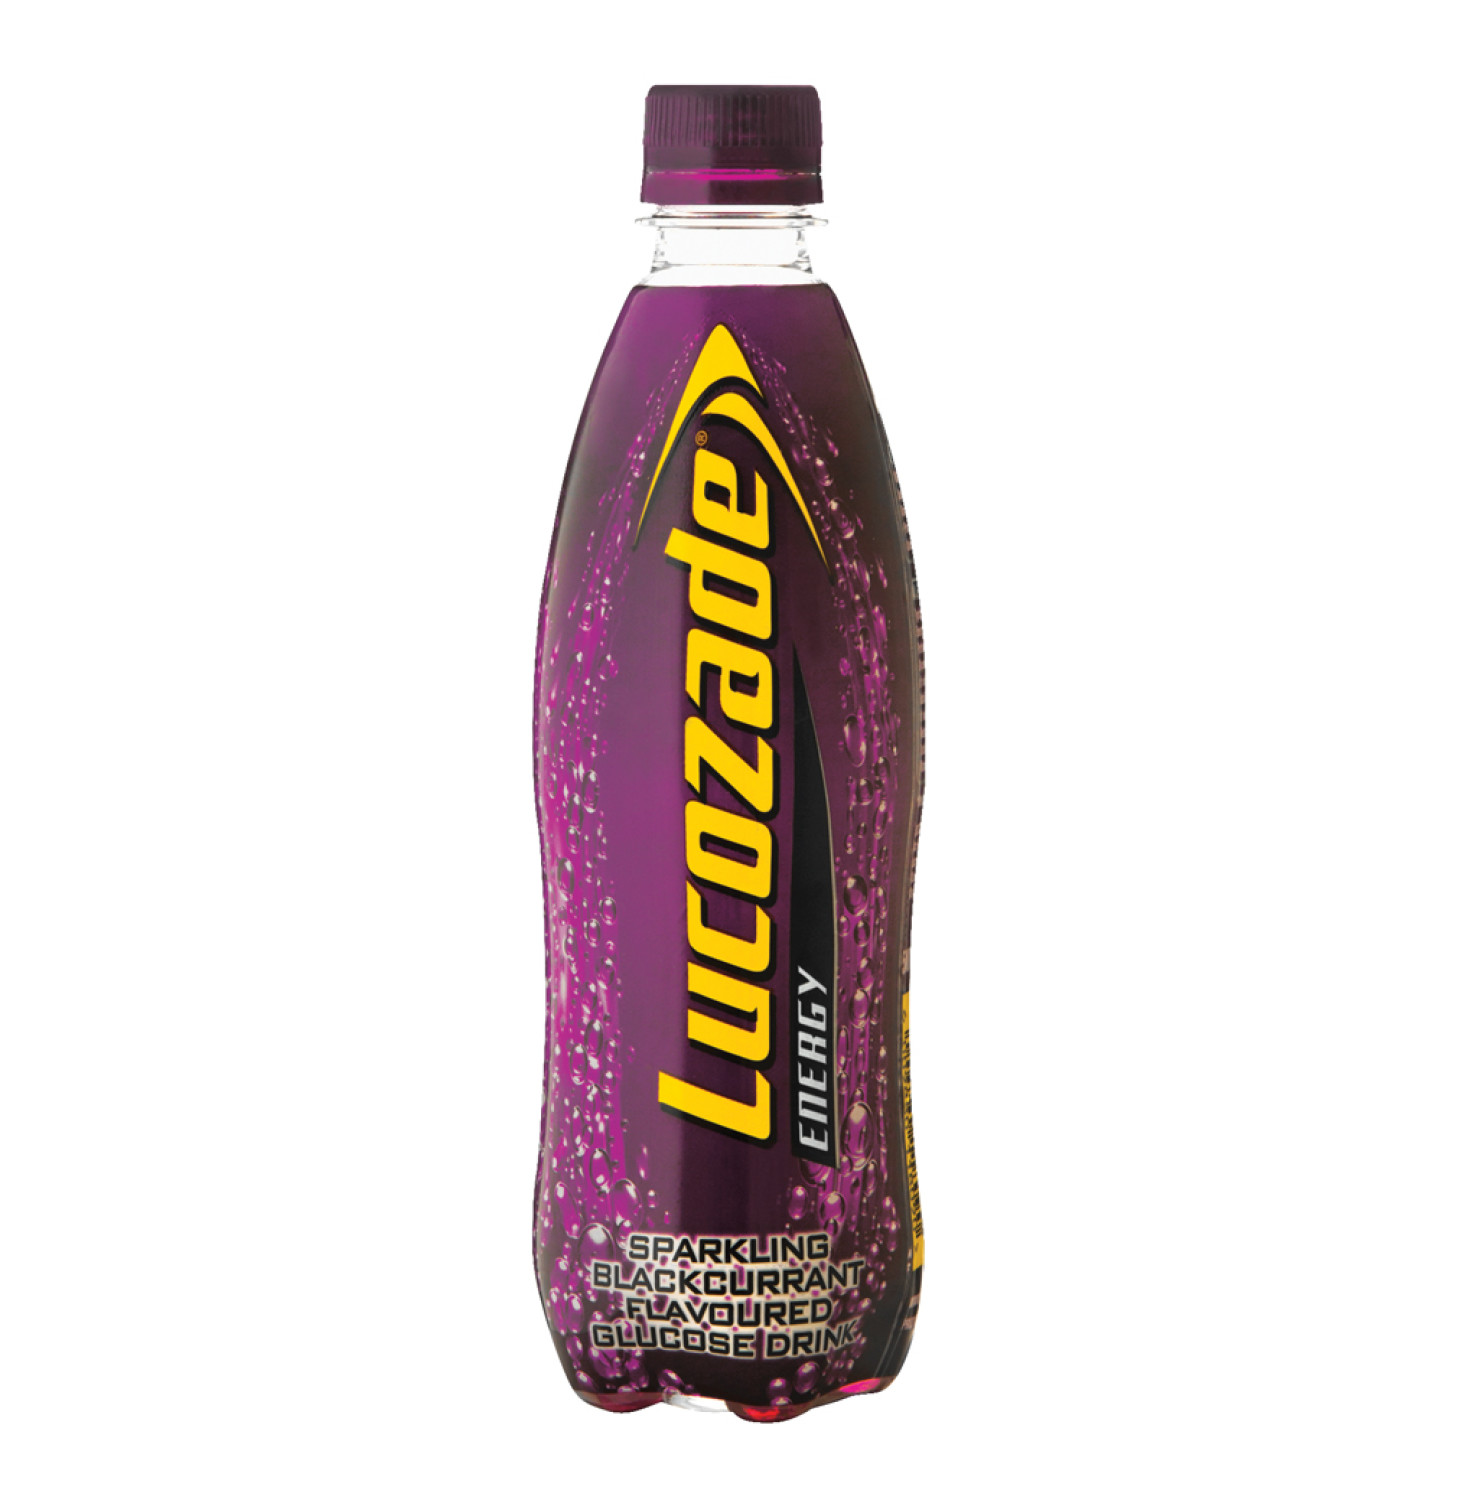 Lucozade Energy Drink Black Current (24 x 500ml)